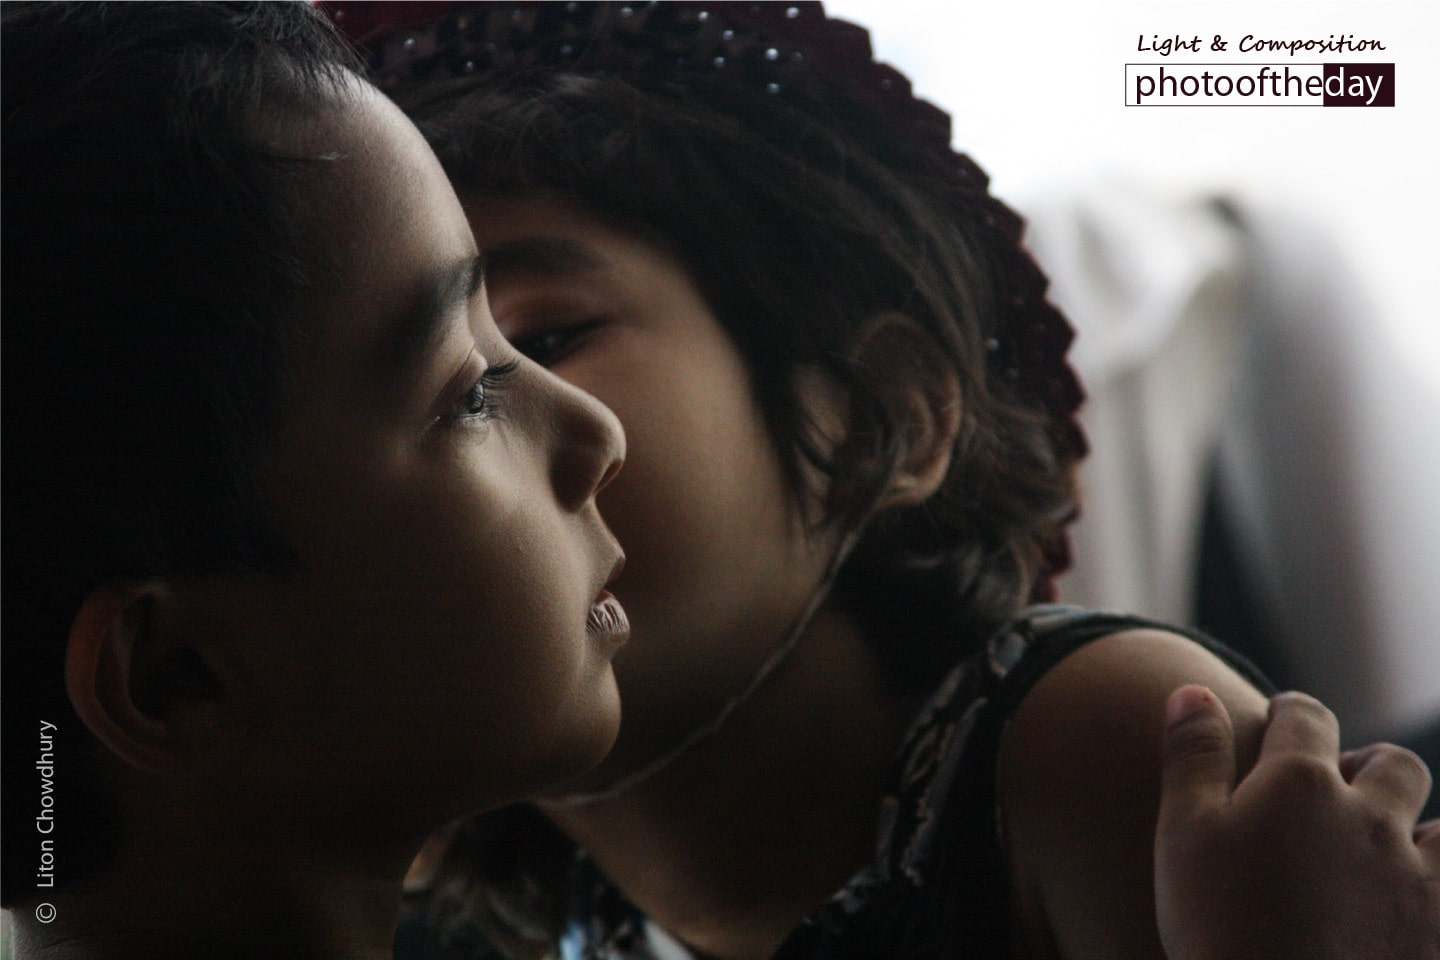 Sharing Innocence, by Liton Chowdhury